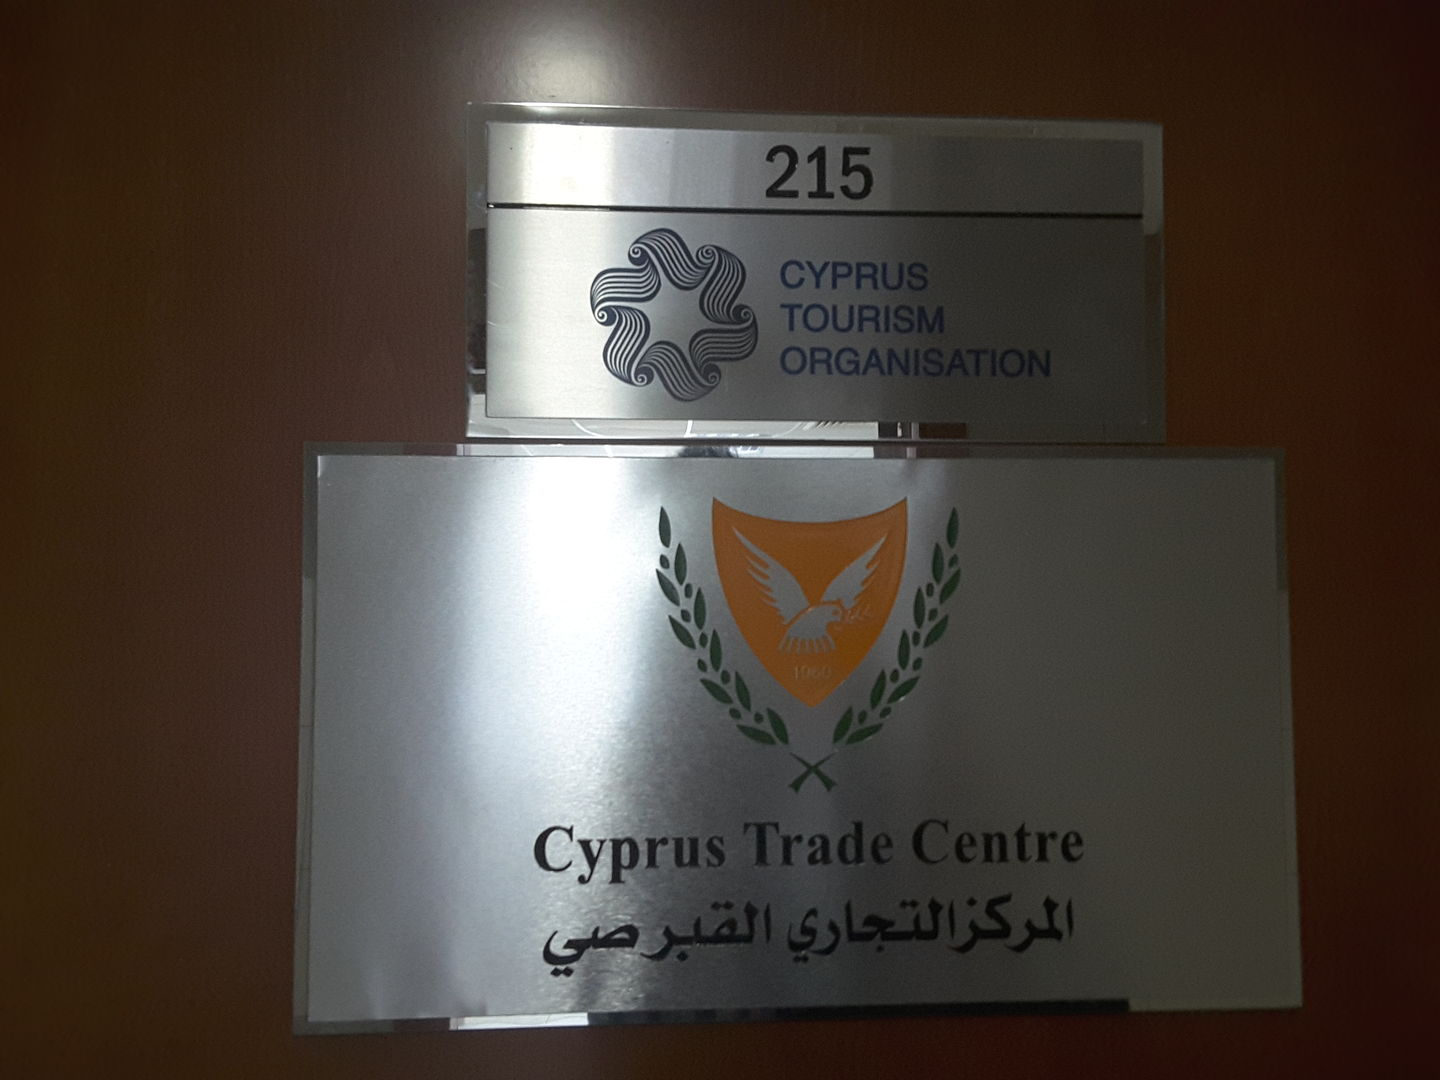 HiDubai-business-cyprus-trade-centre-government-public-services-government-offices-al-karama-dubai-2